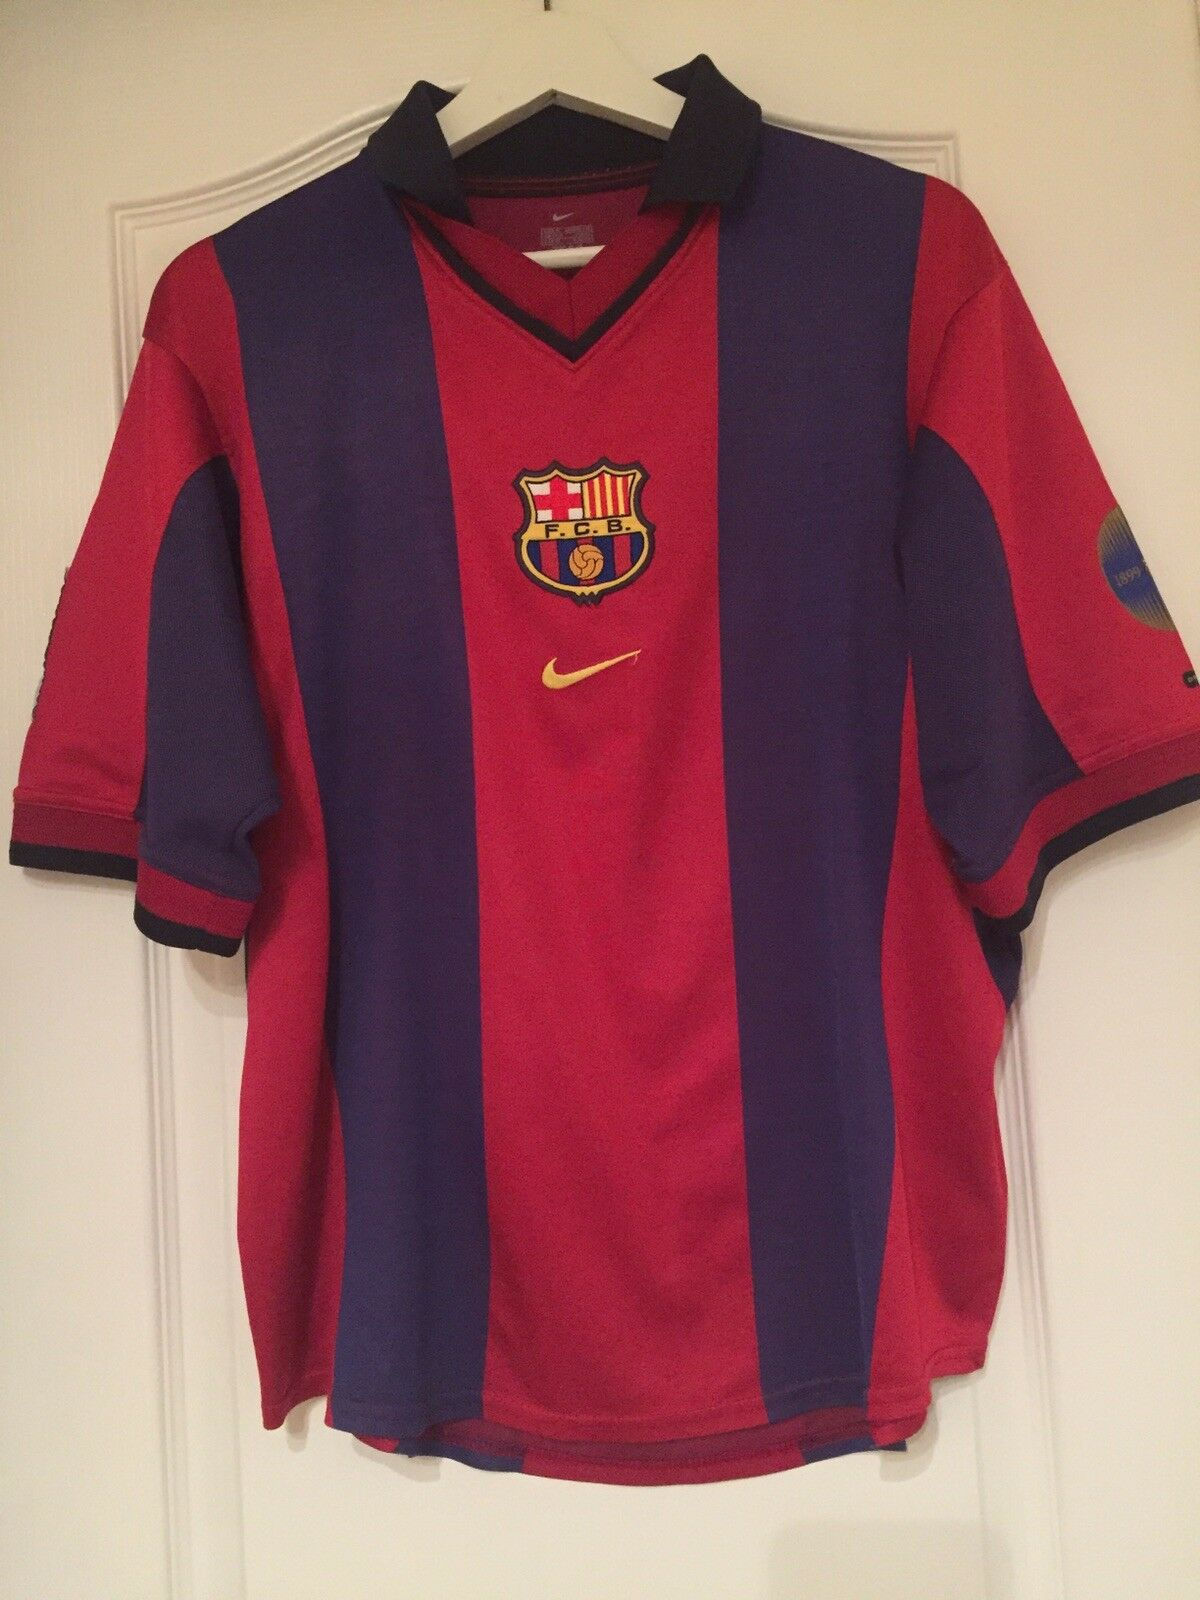 Fcb barcelona spain football vintage nike centenary 1899-1999 shirt Men's Size M